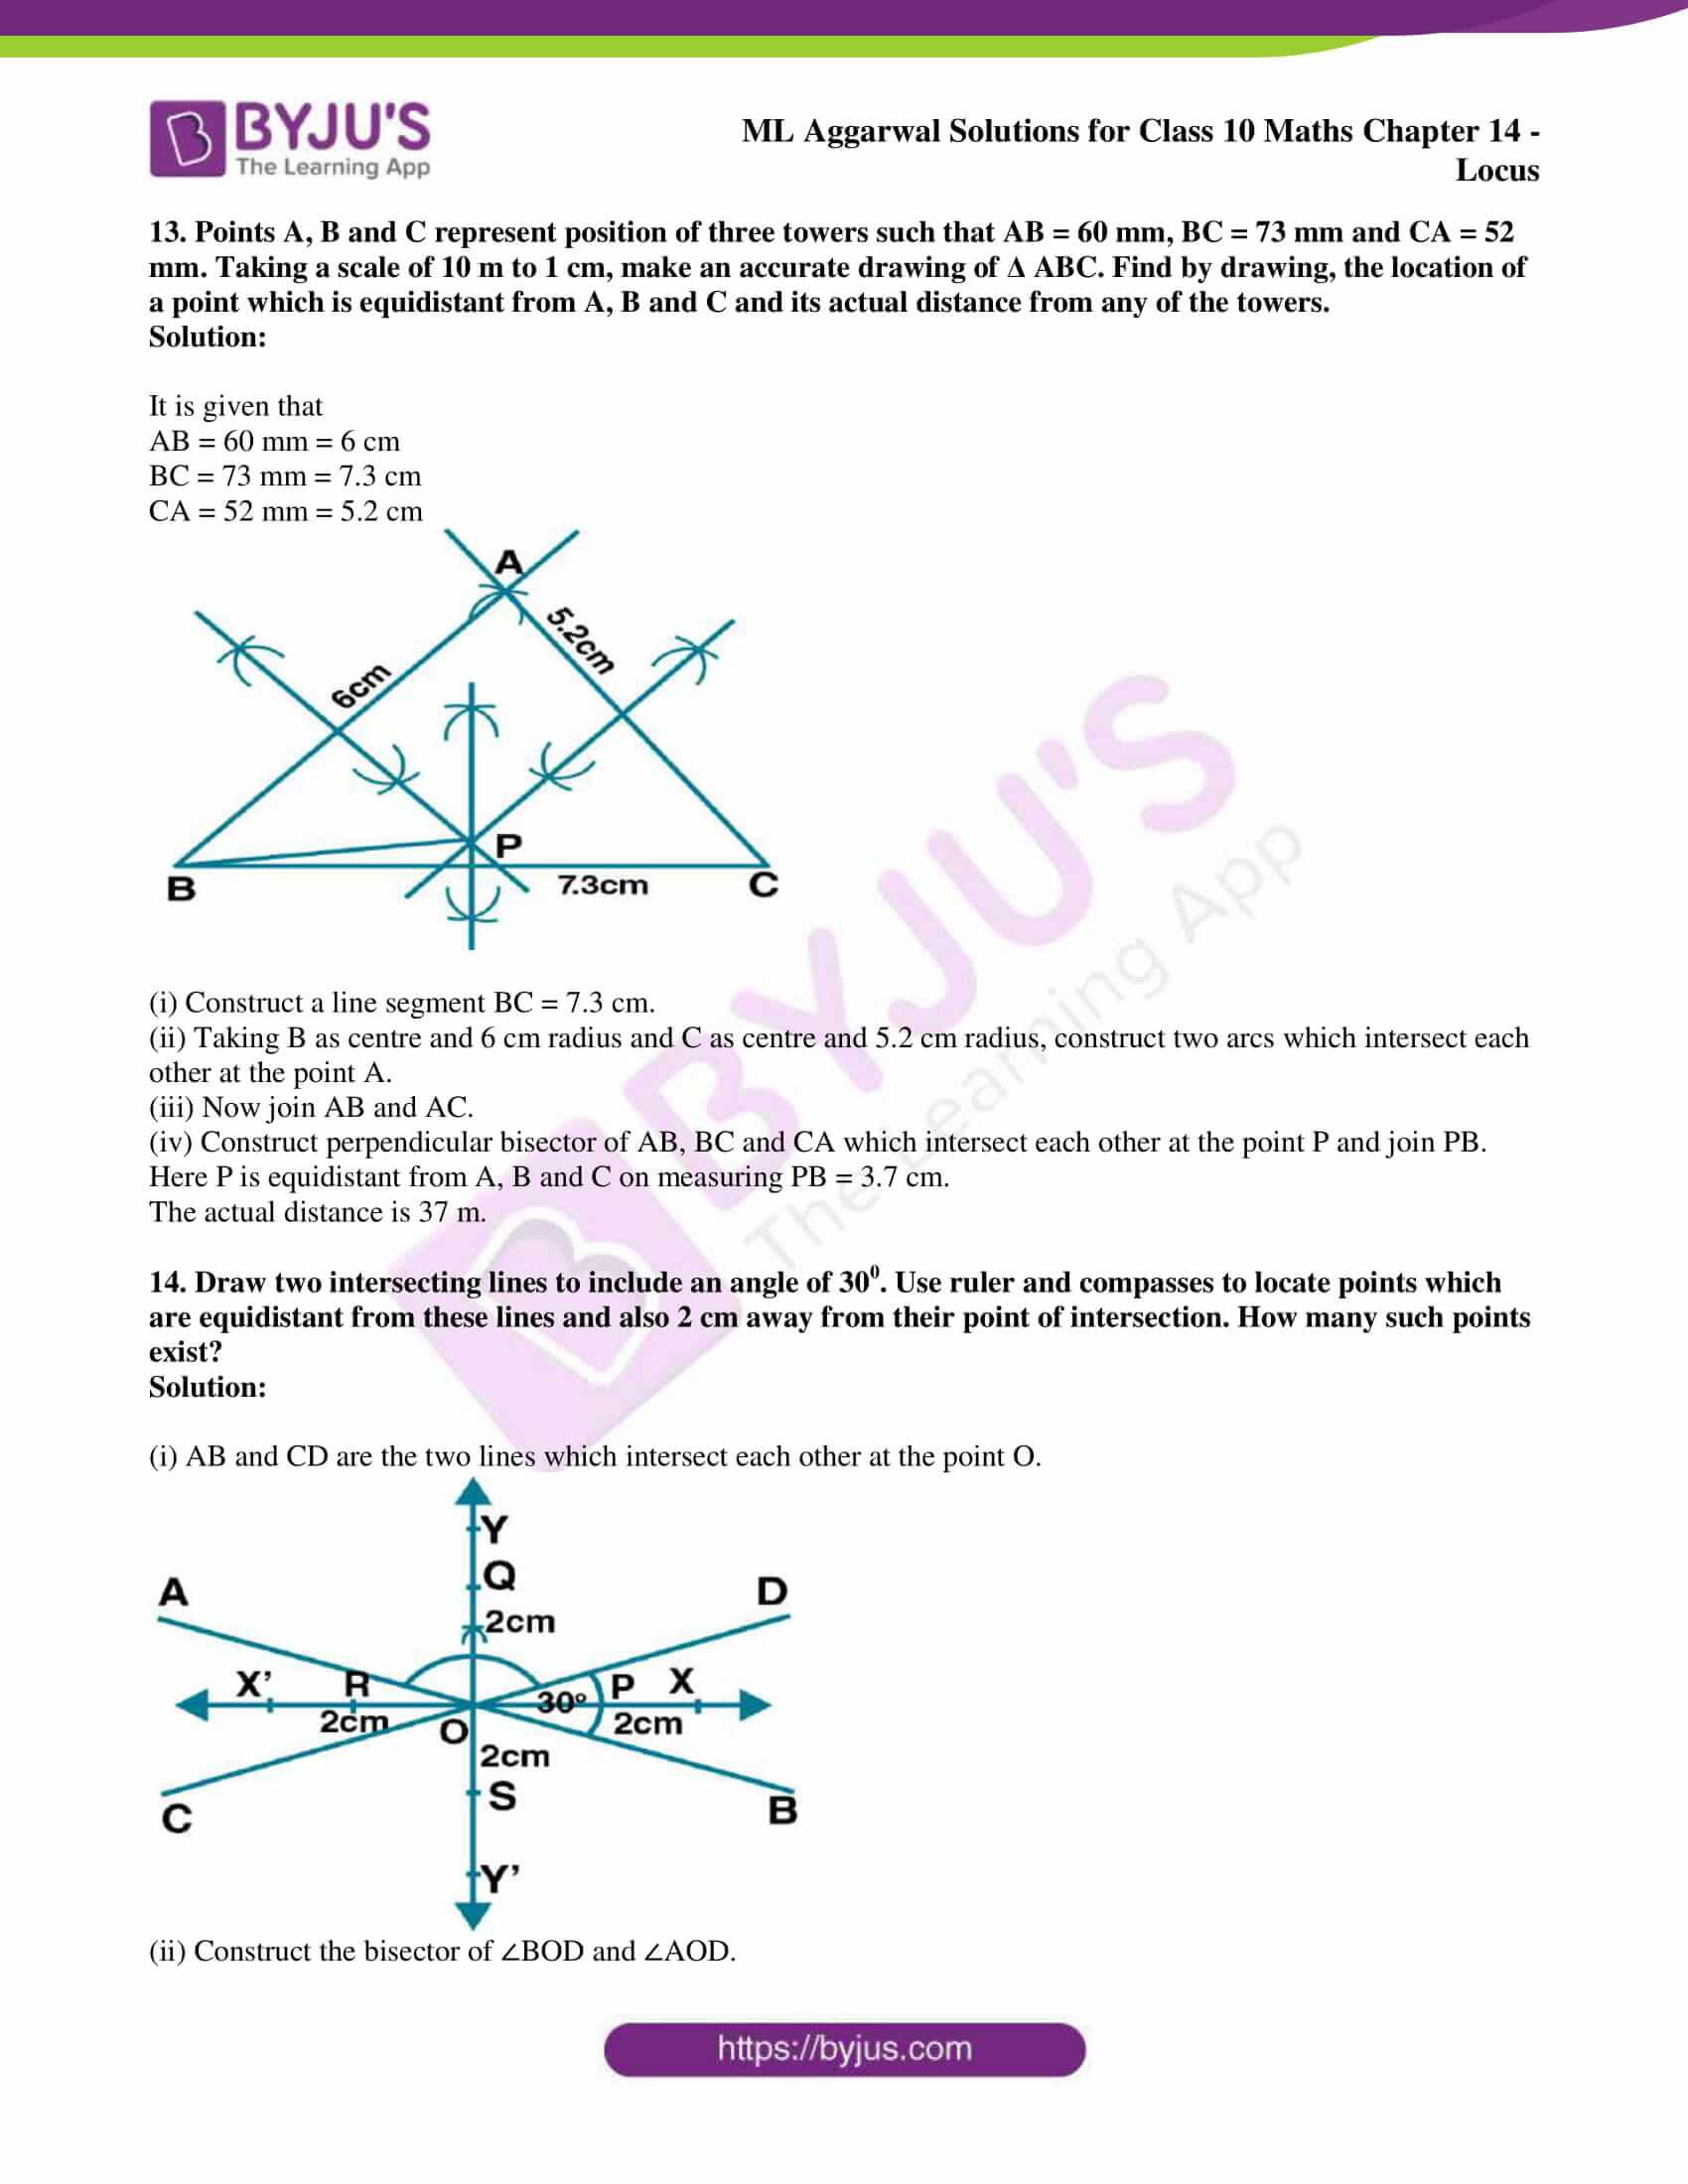 ml aggarwal solutions for class 10 maths chapter 14 13